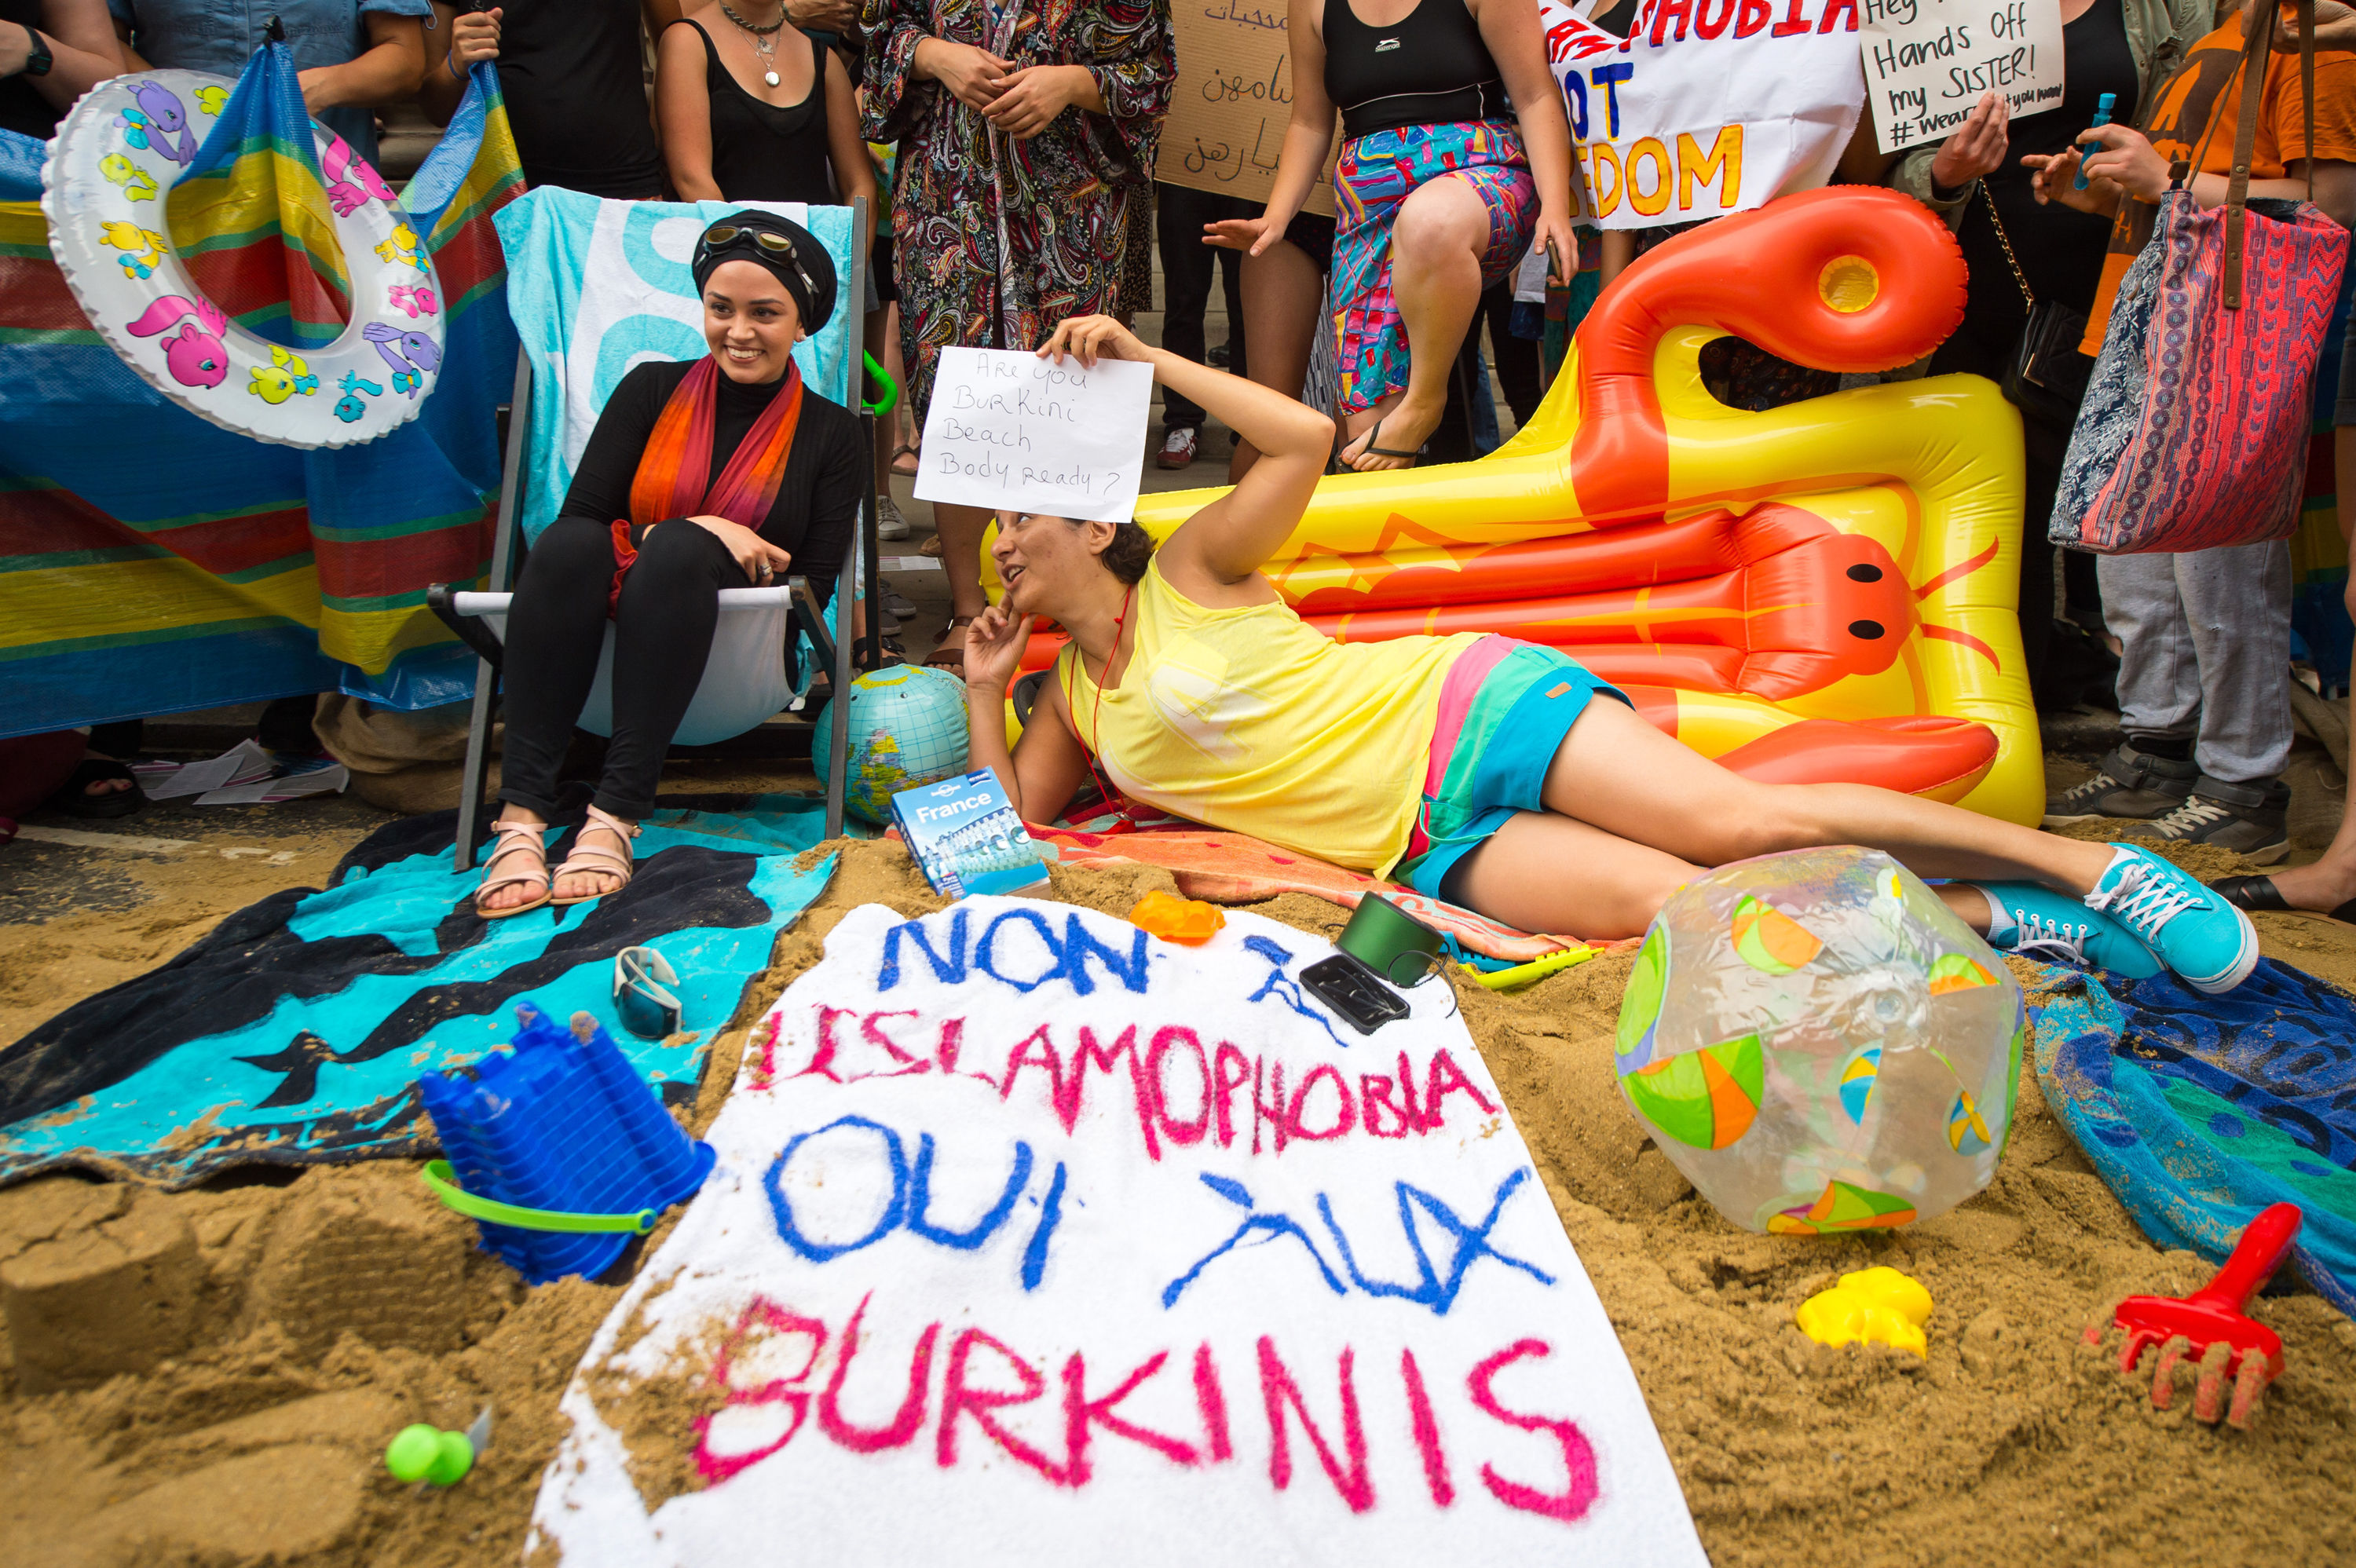 Frances Burkini Ban Is Illegal According To Their Own High Court burkini3